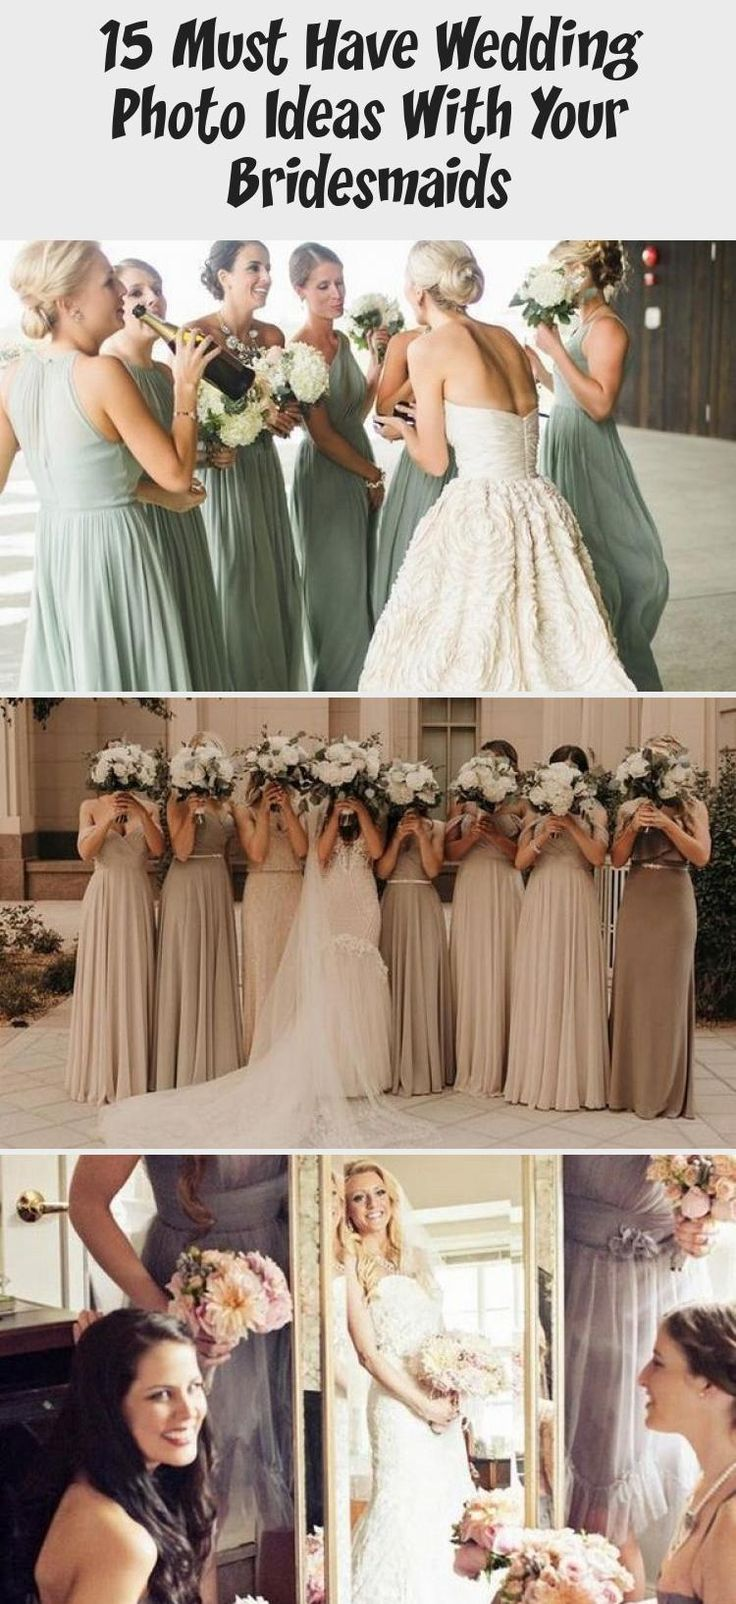 neutral colored bridesmaid dresses #BridesmaidDresses2019 #WhiteBridesmaidDresses #CasualBridesmaidDresses #BridesmaidDressesLong #SageBridesmaidDresses